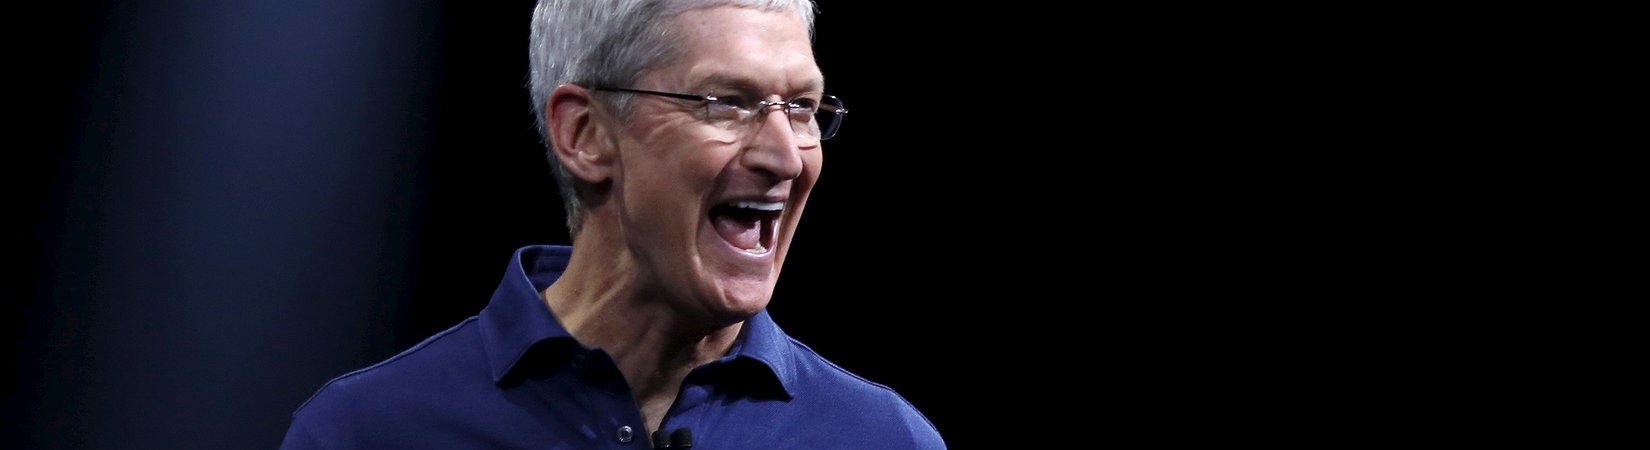 Apple to create $1b fund to invest in hi-tech manufacturing in US